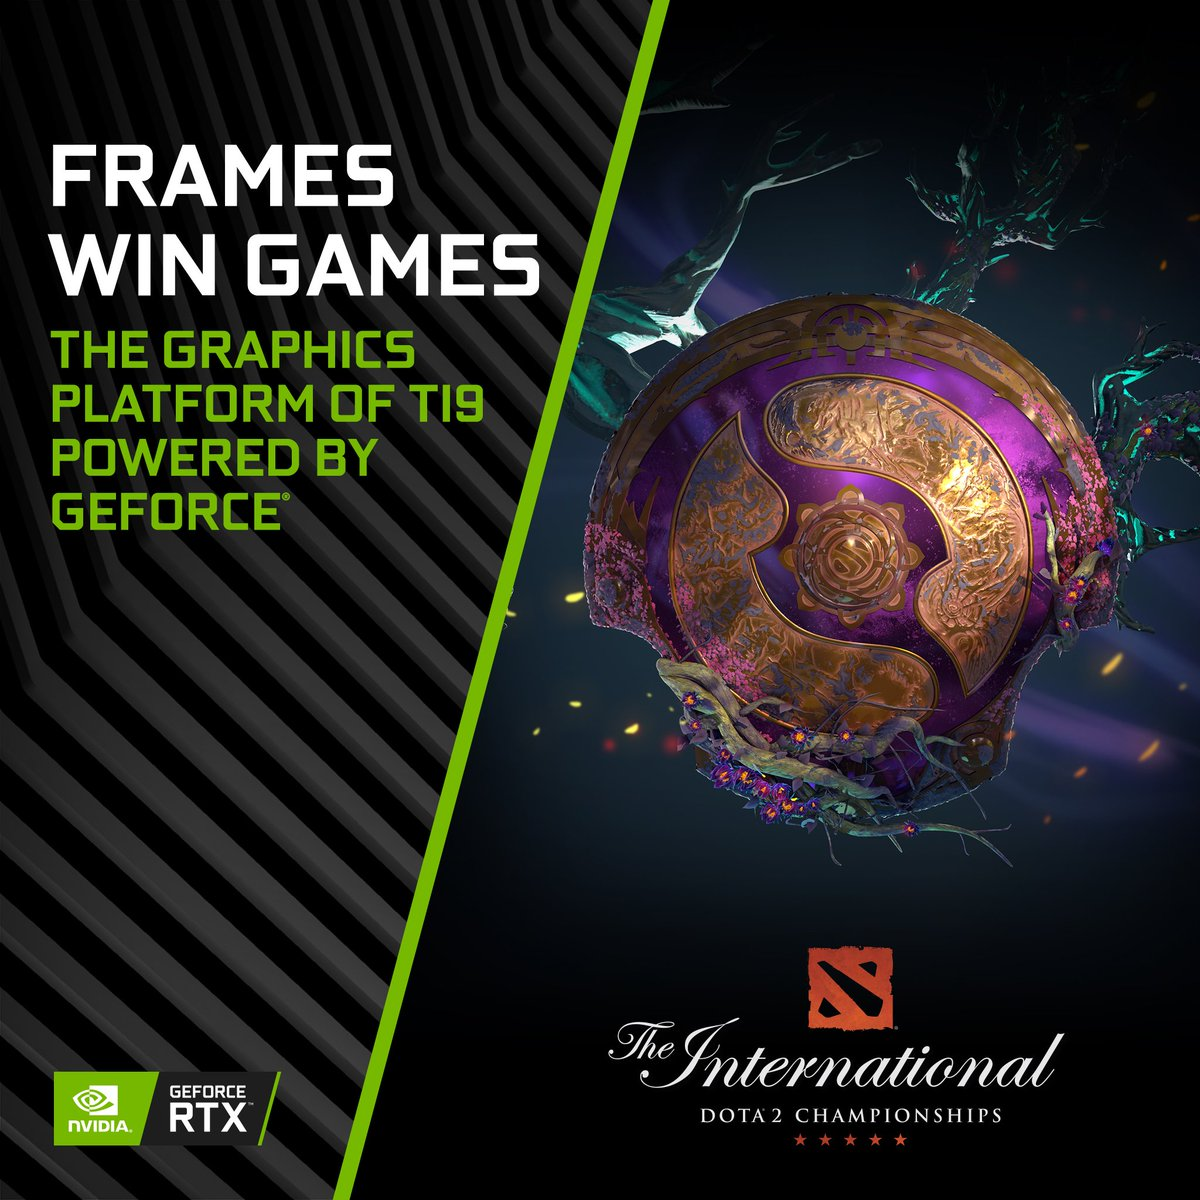 We're proud to announce that GeForce is once again powering the DOTA 2 International.   When the world's best teams compete in Shanghai this year, they will compete on RTX 2080 GPUs and 240 Hz G-Sync Monitors. #FramesWinGames  Learn more →  https:// blogs.nvidia.com/blog/2019/07/0 5/nvidia-geforce-the-international-shanghai/   … <br>http://pic.twitter.com/v7R7DnNeXa